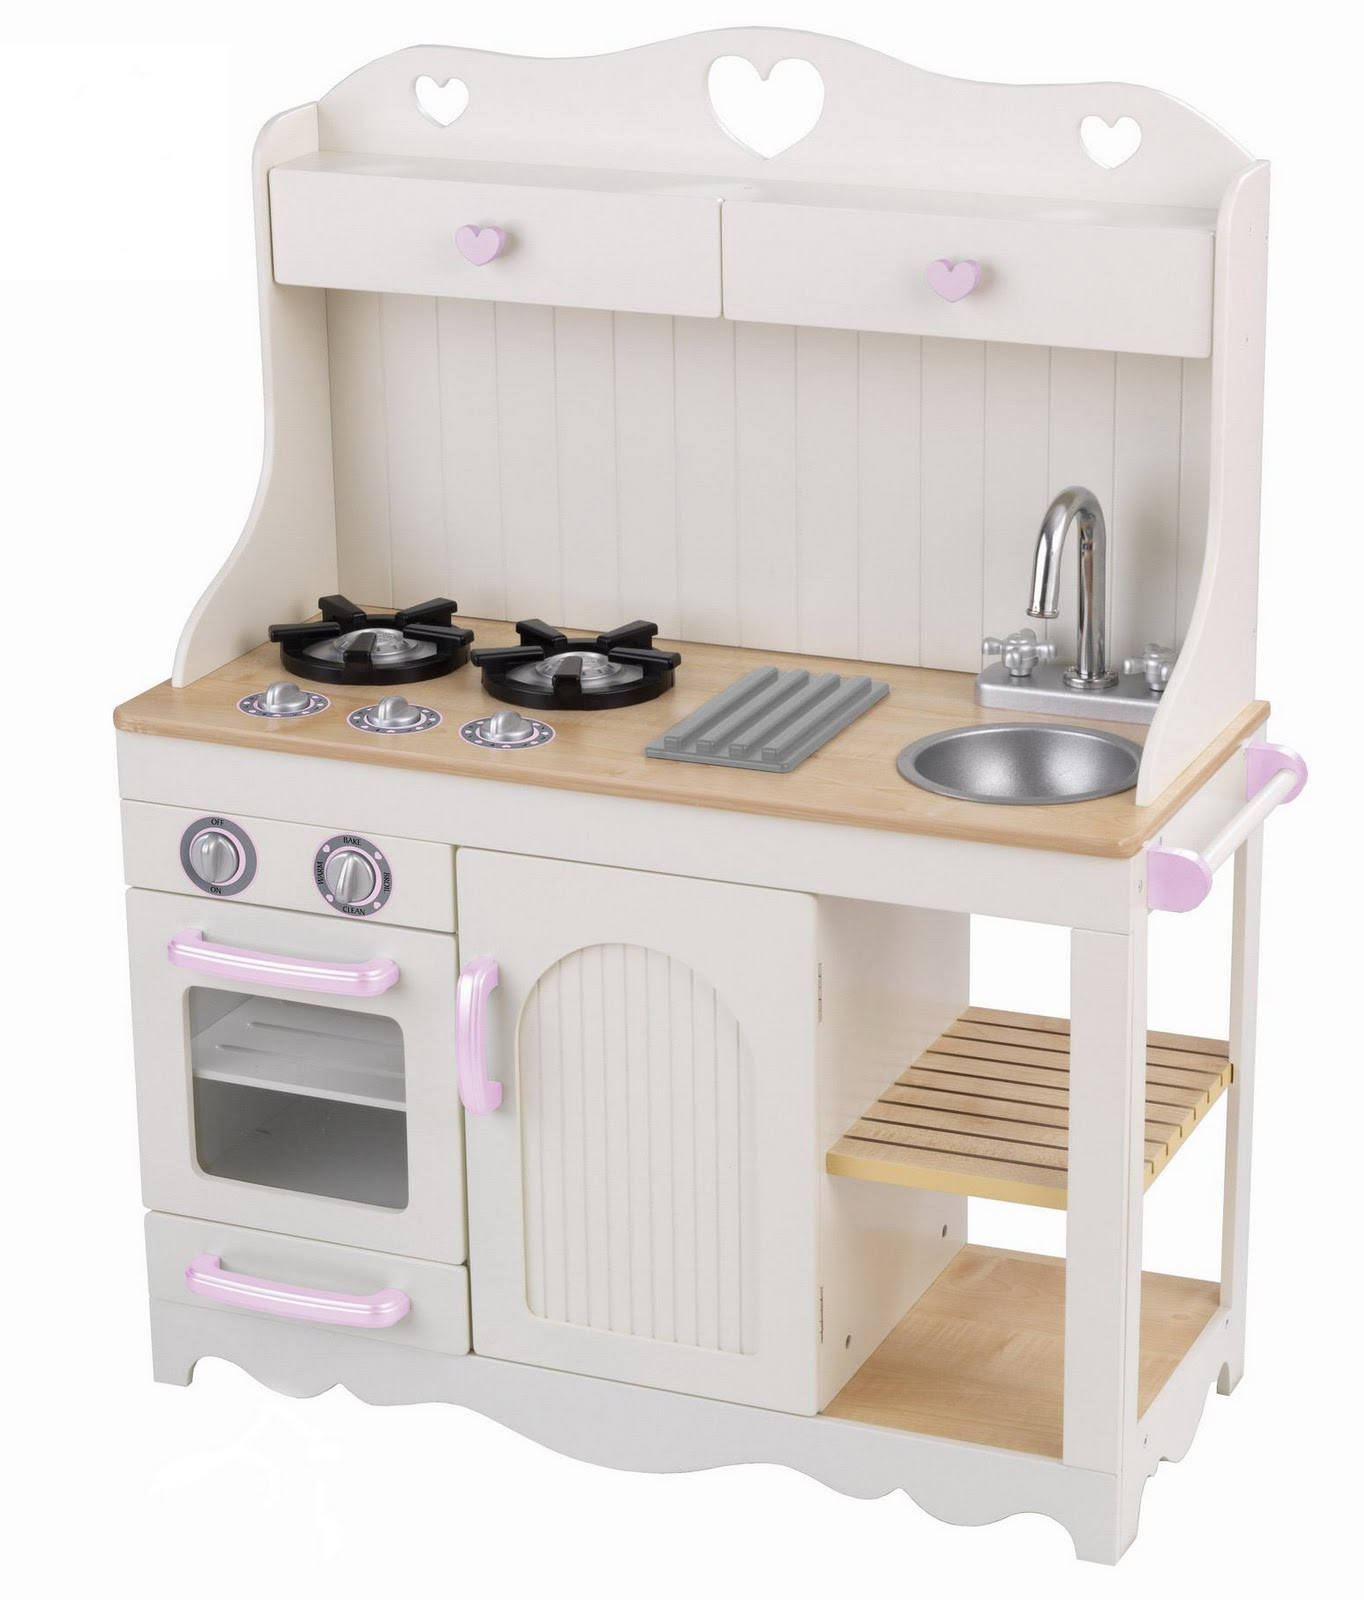 wooden toy kitchens kitchenaid kitchen appliances cool girl zone for little girls and boys